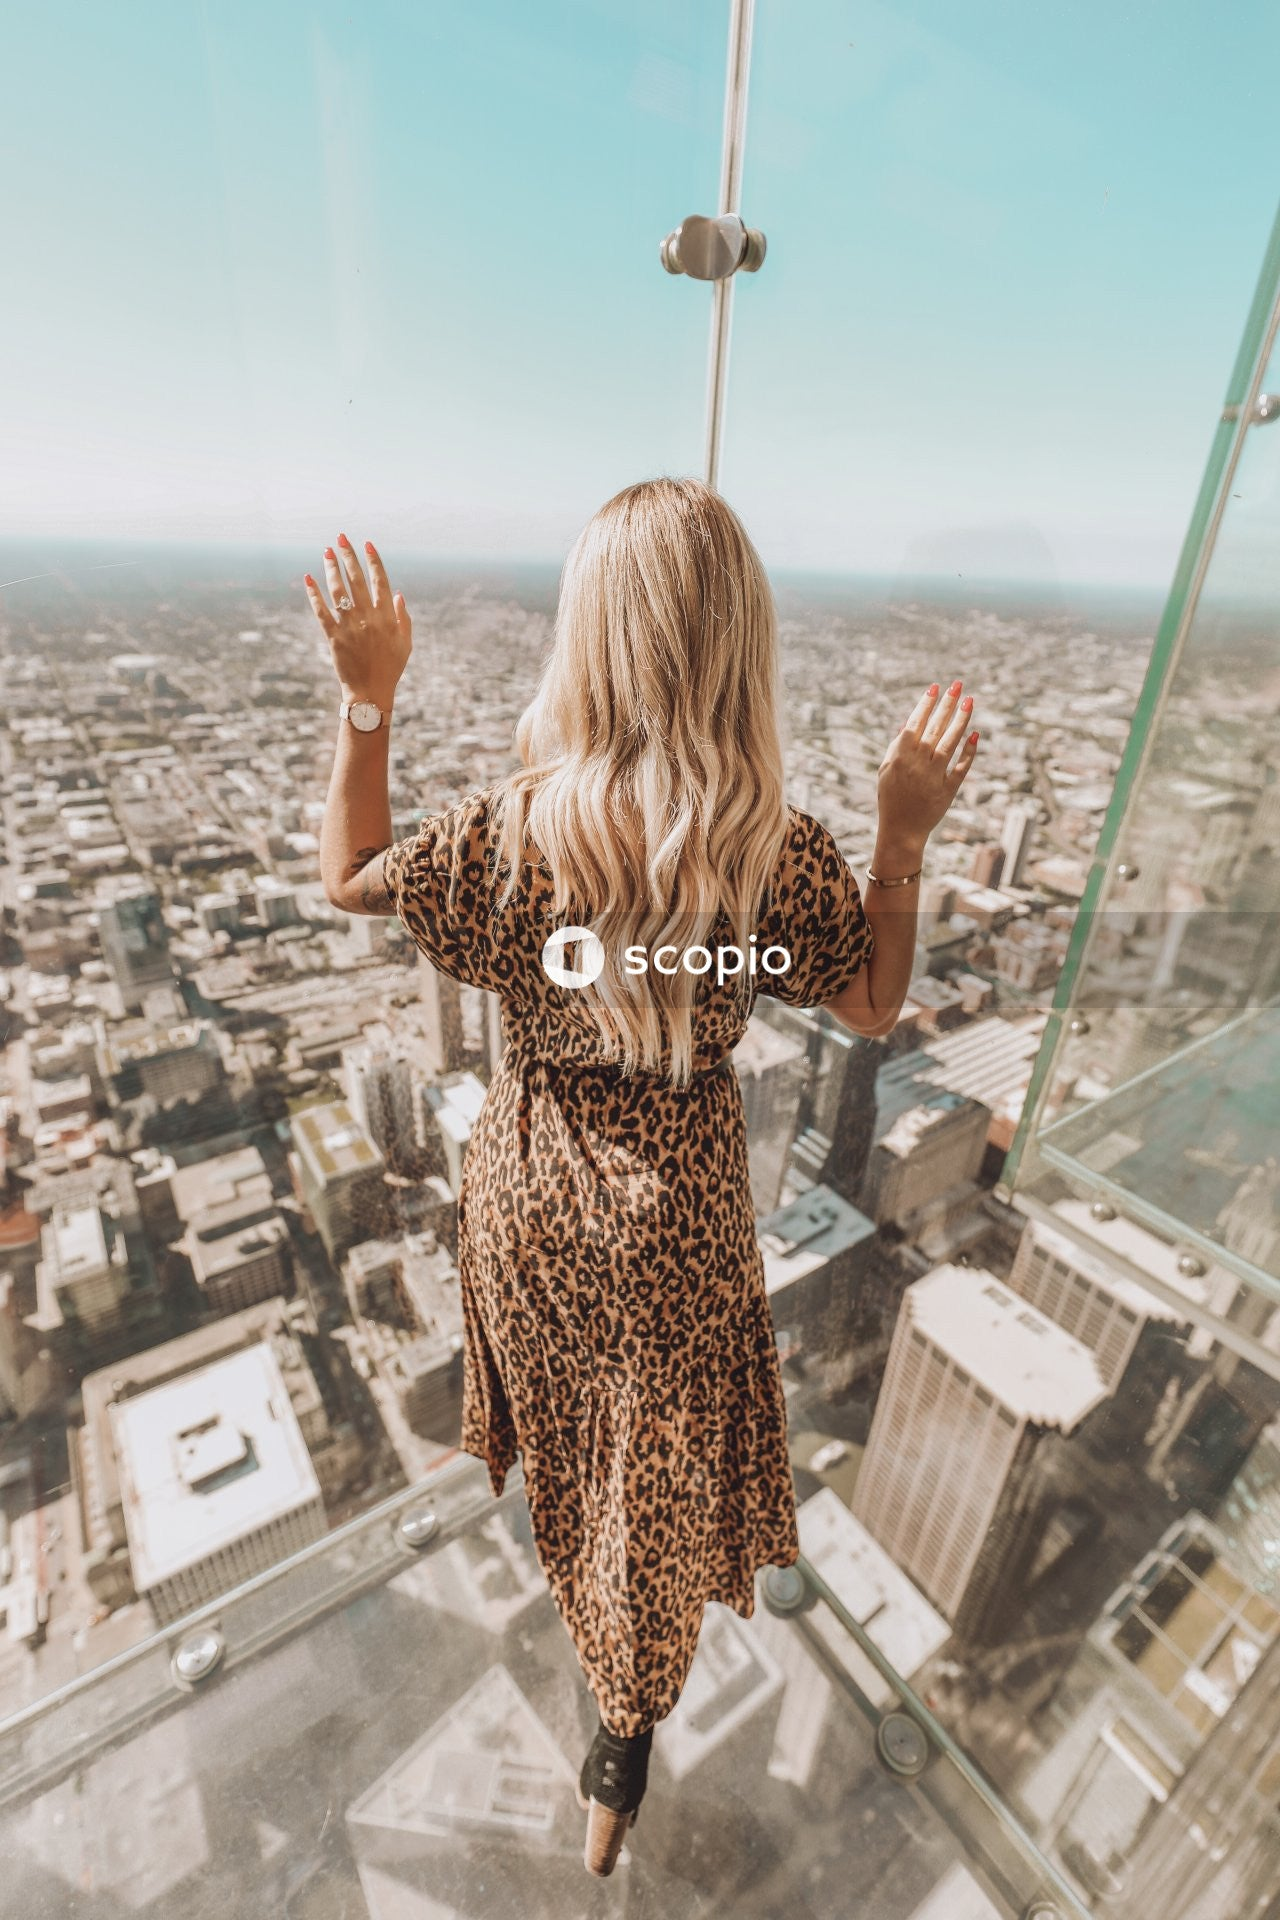 Woman in brown and black leopard print dress standing on top of building